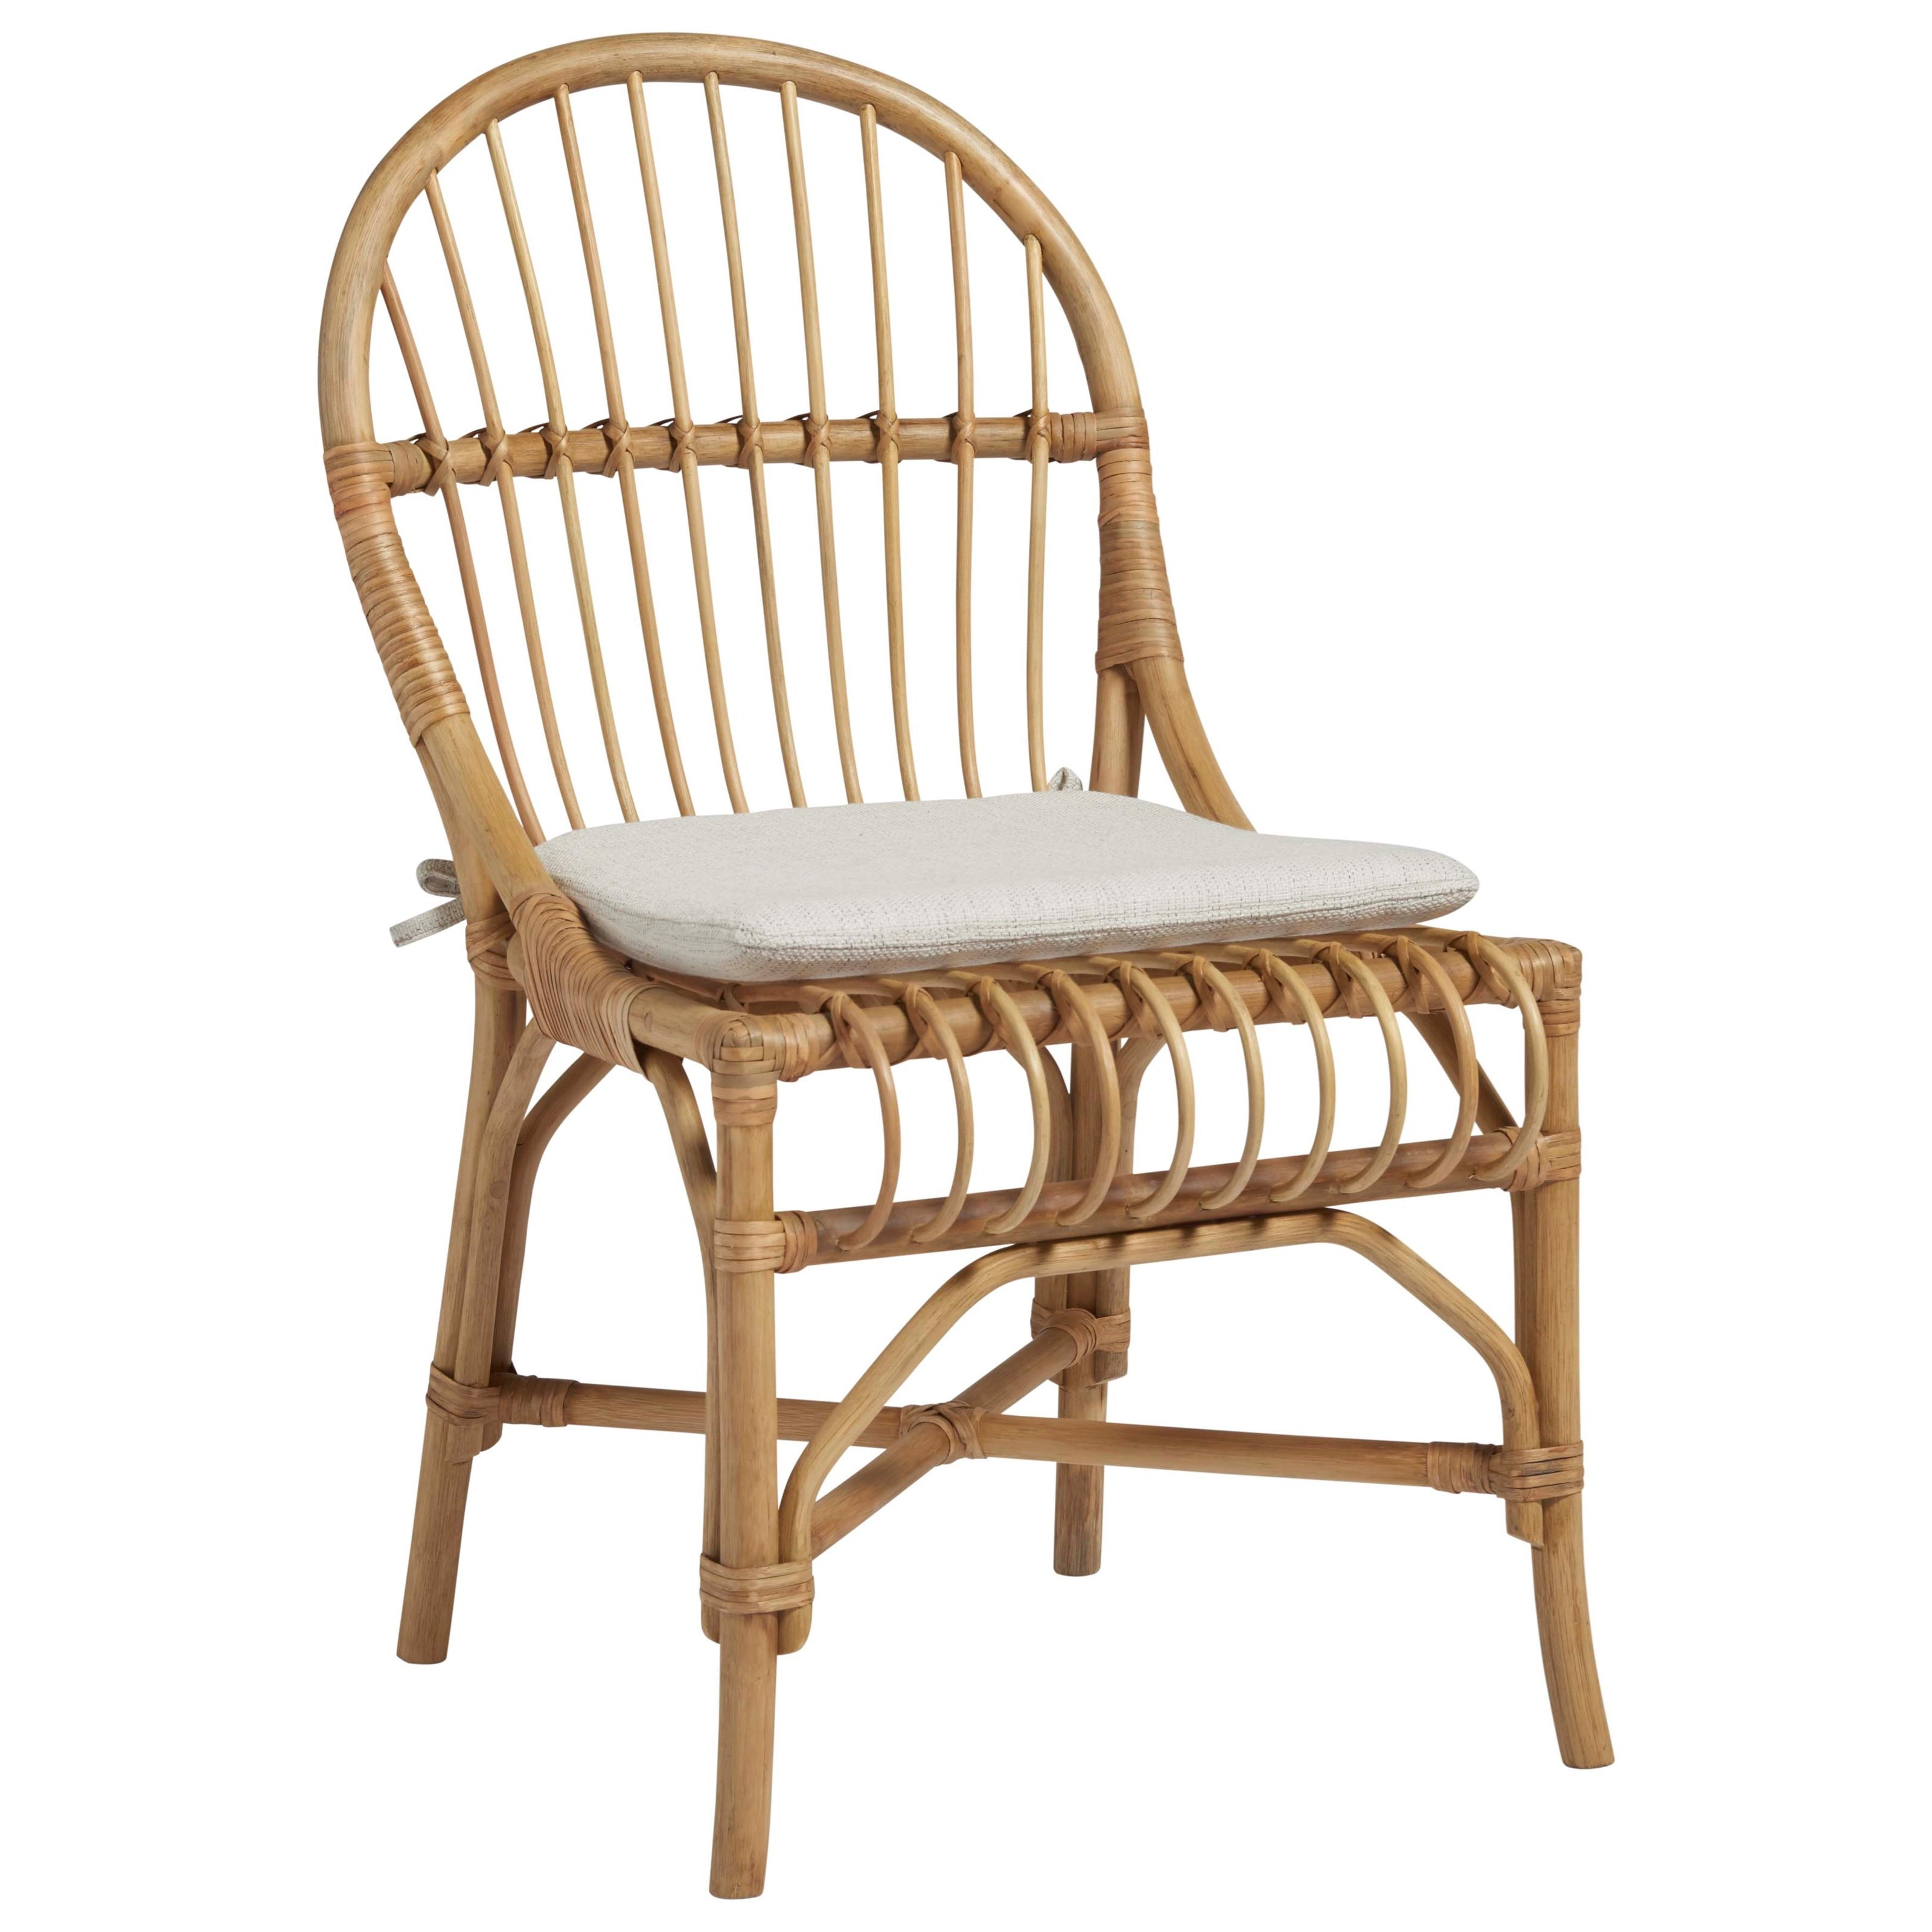 Coastal Living Home - Escape Sanibel Side chair by Universal at Baer's Furniture